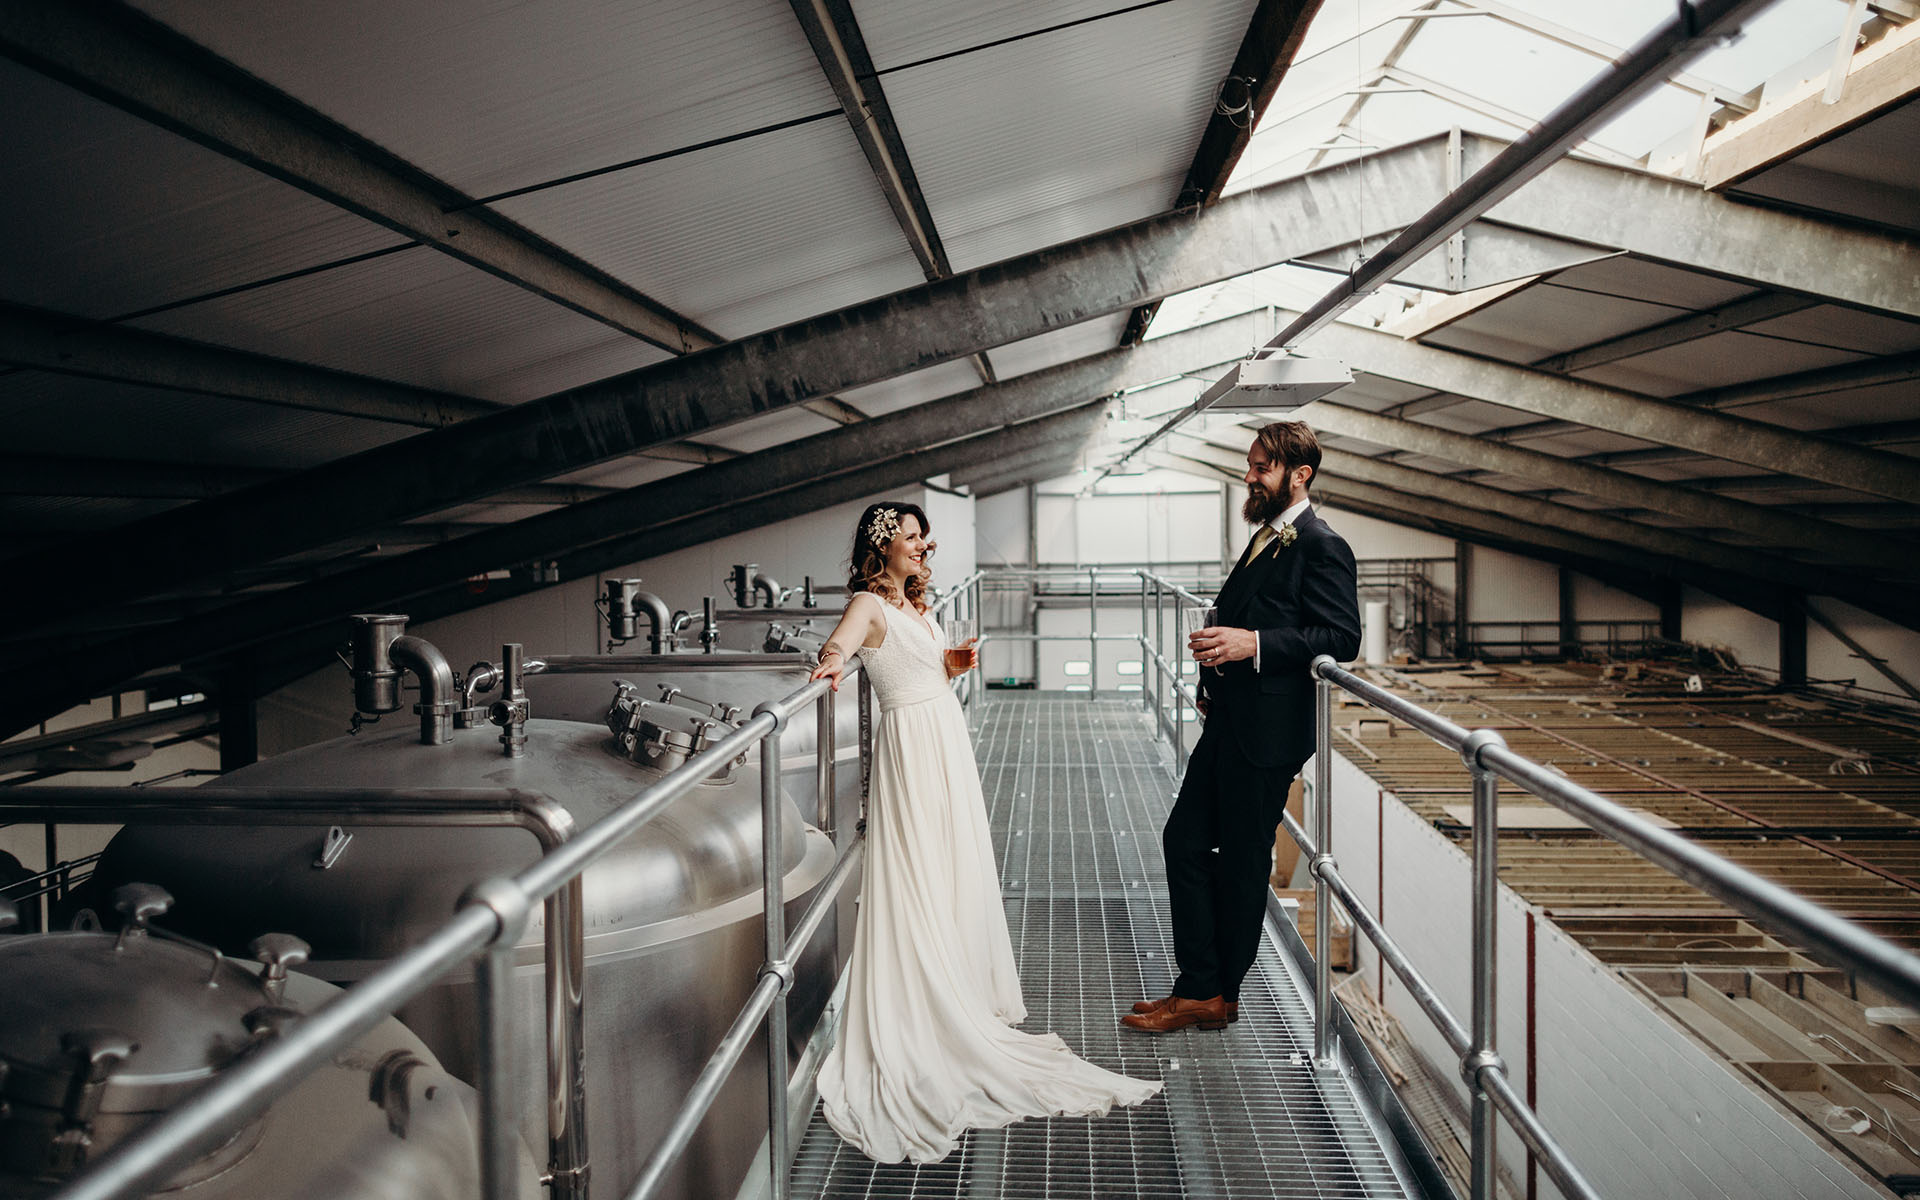 Beer brewery wedding photographer